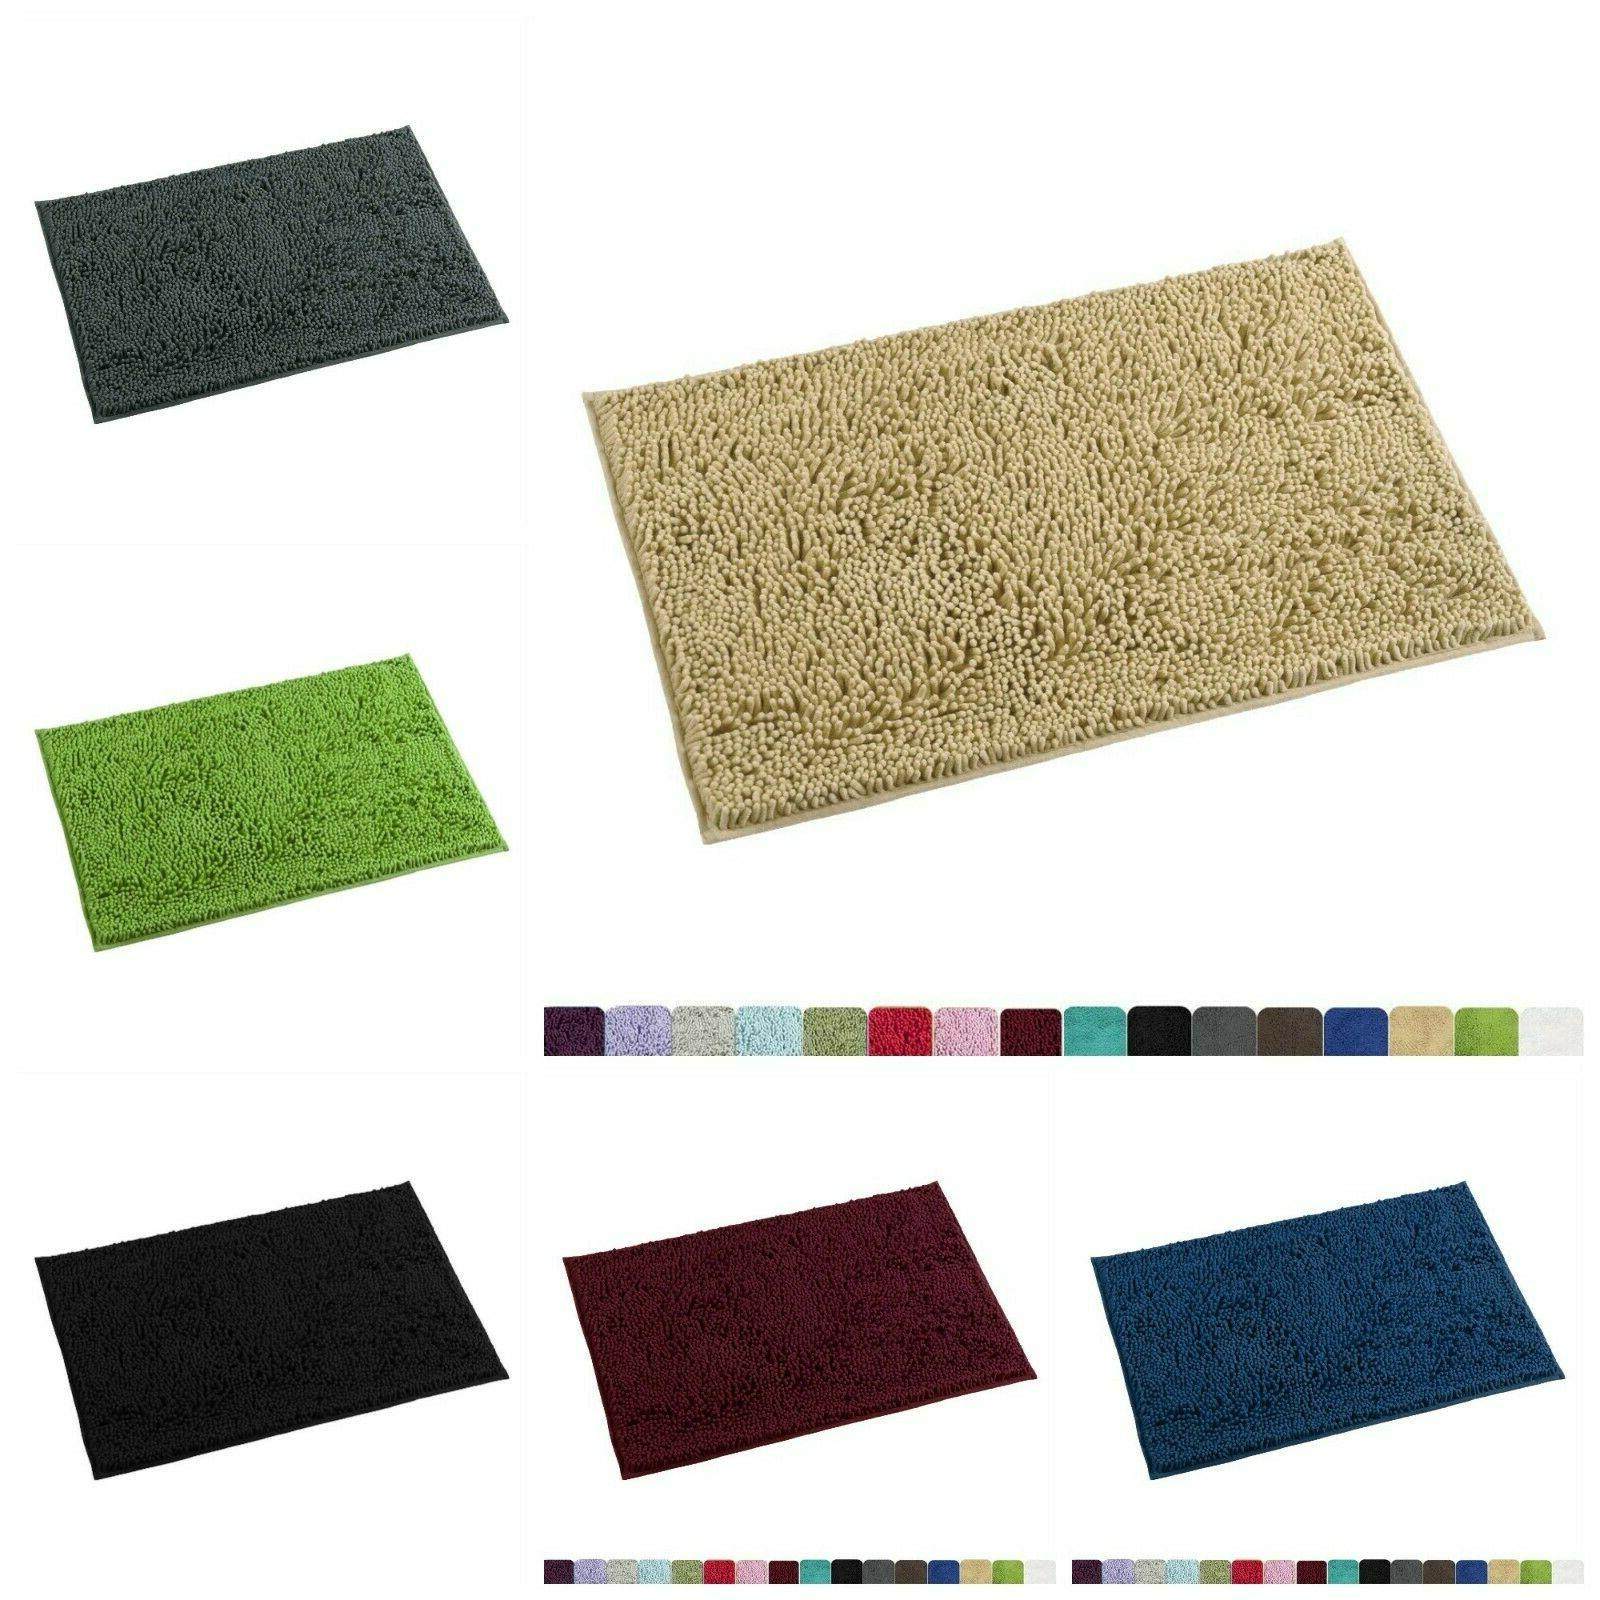 Bathroom Rug Non Slip Shower Mat Water Absorbent Soft Microf